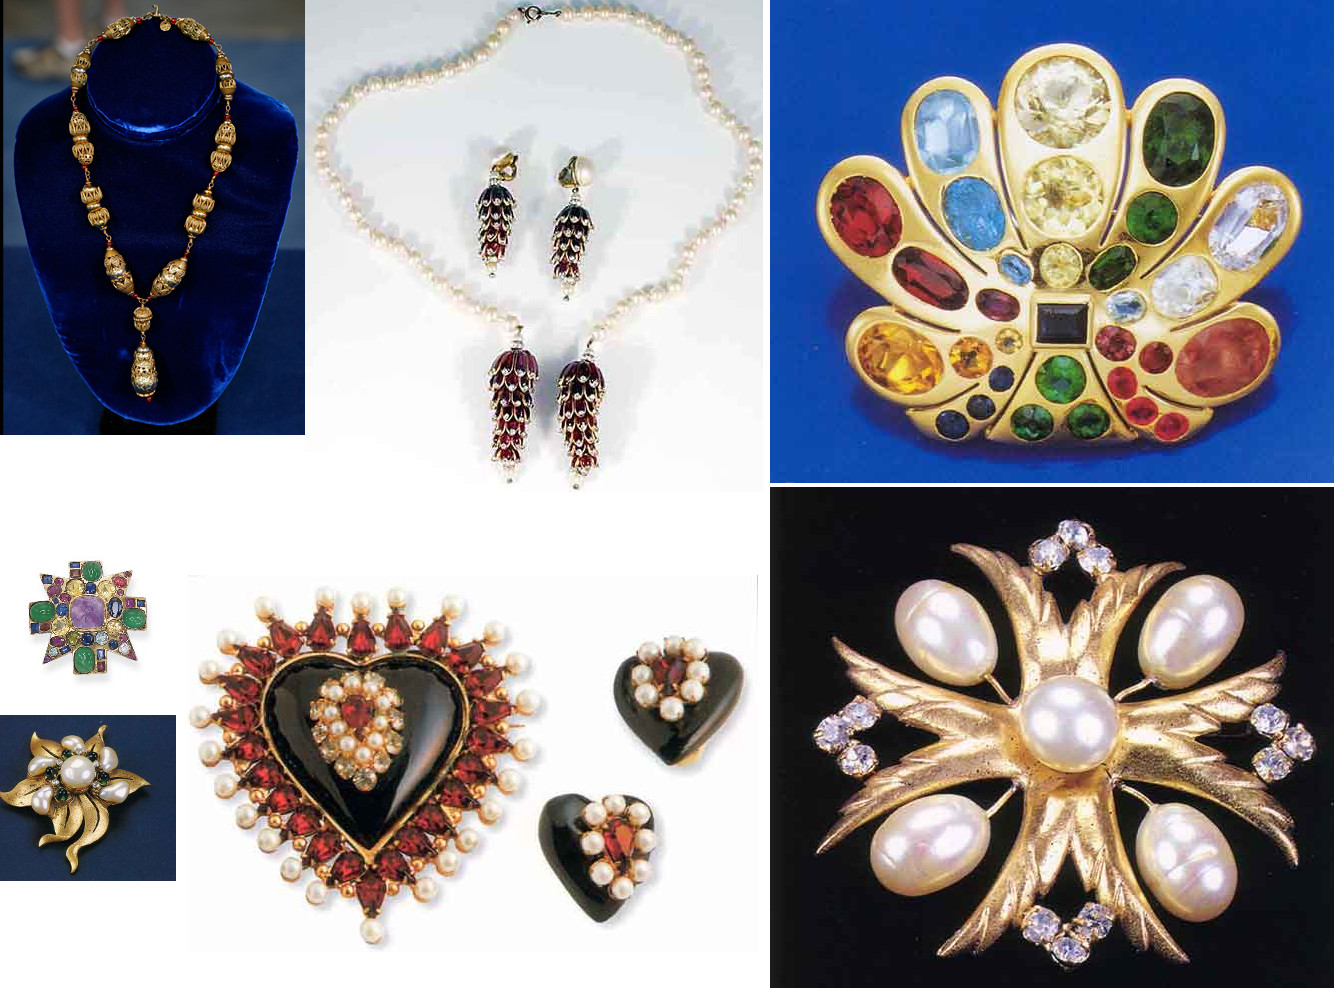 dating costume jewelry